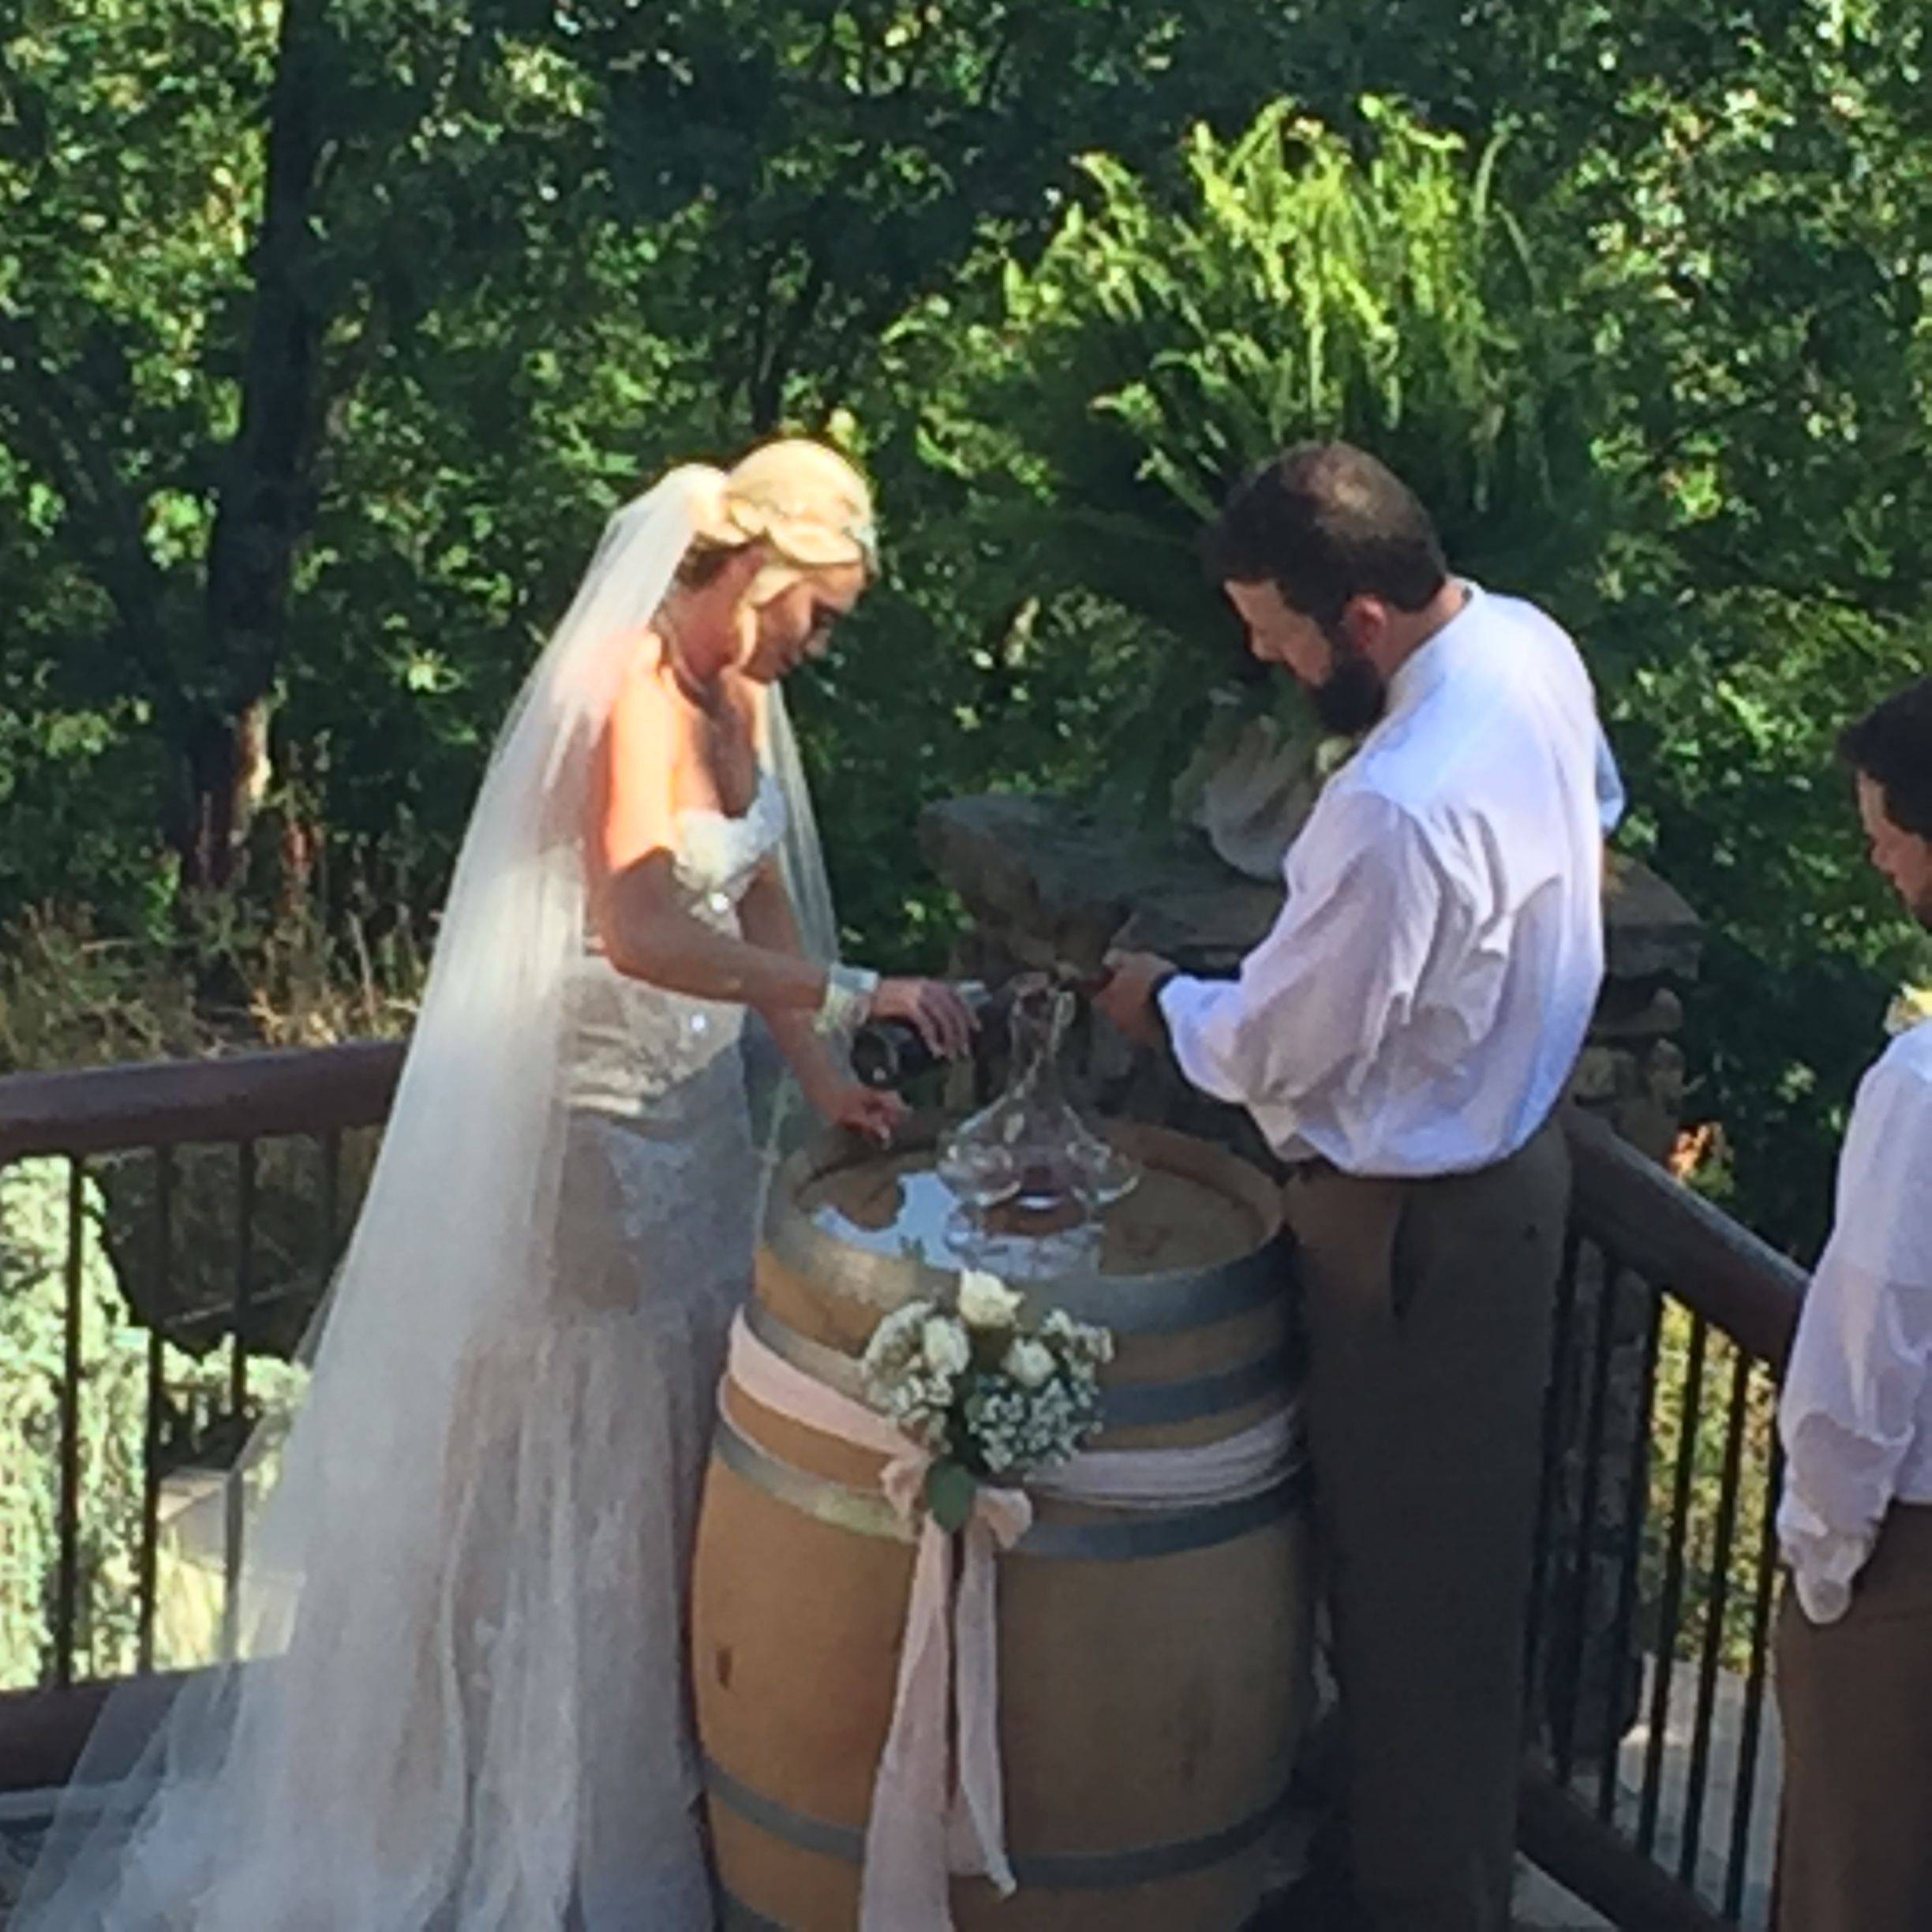 Wine Blending Wedding Ceremony At An Enchanting Evening